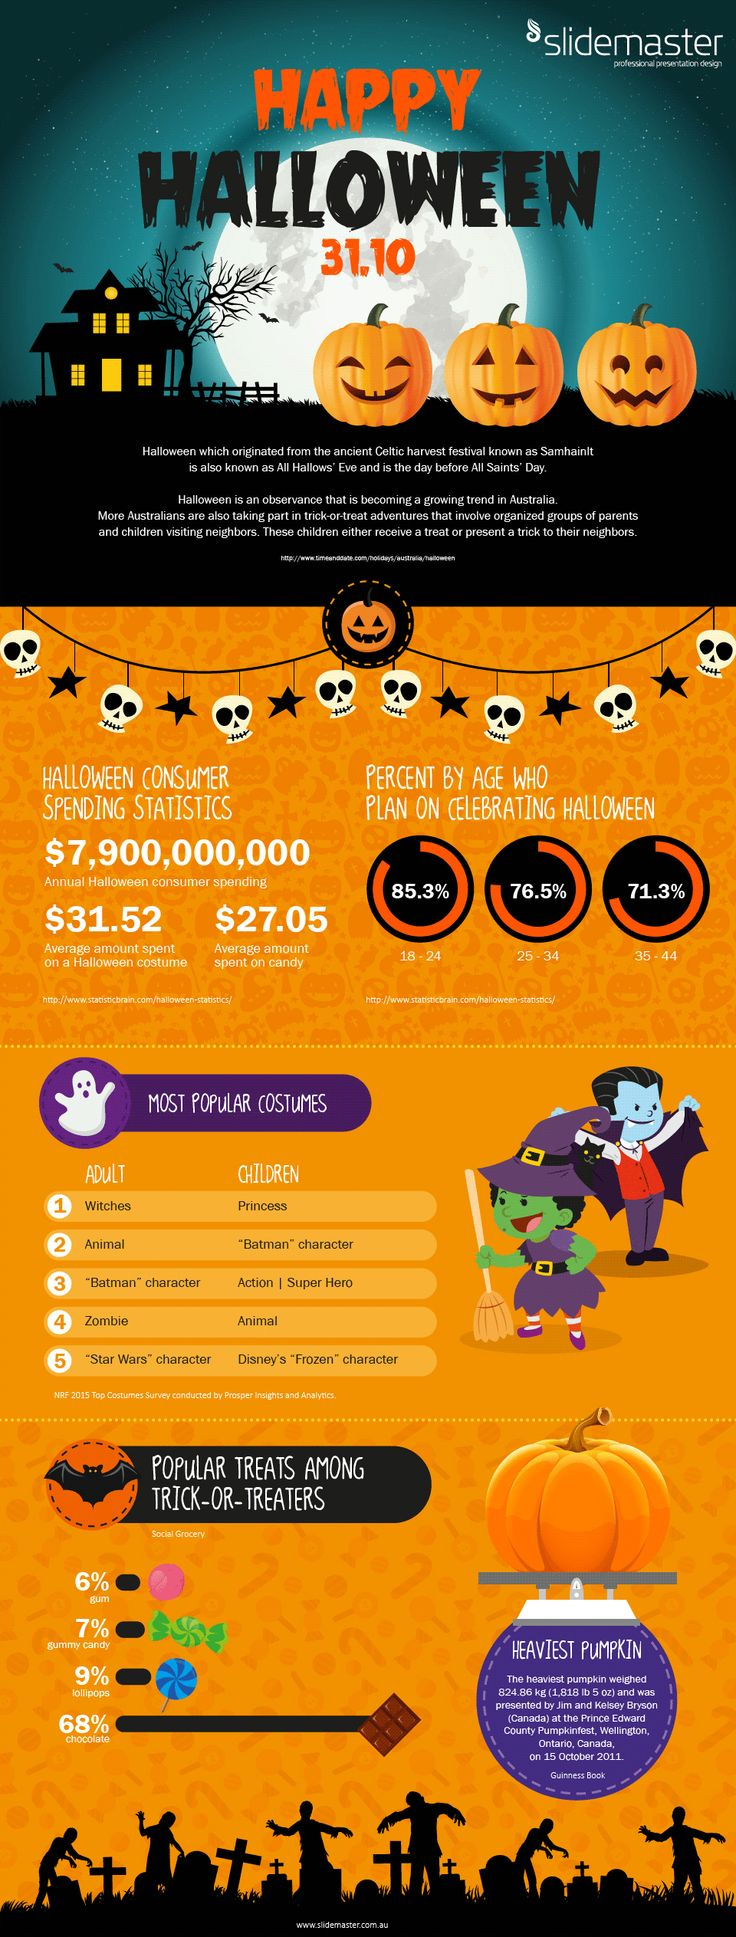 Happy Halloween. Gif-o-Graphic. Animated Infographic. Designed by Slidemaster